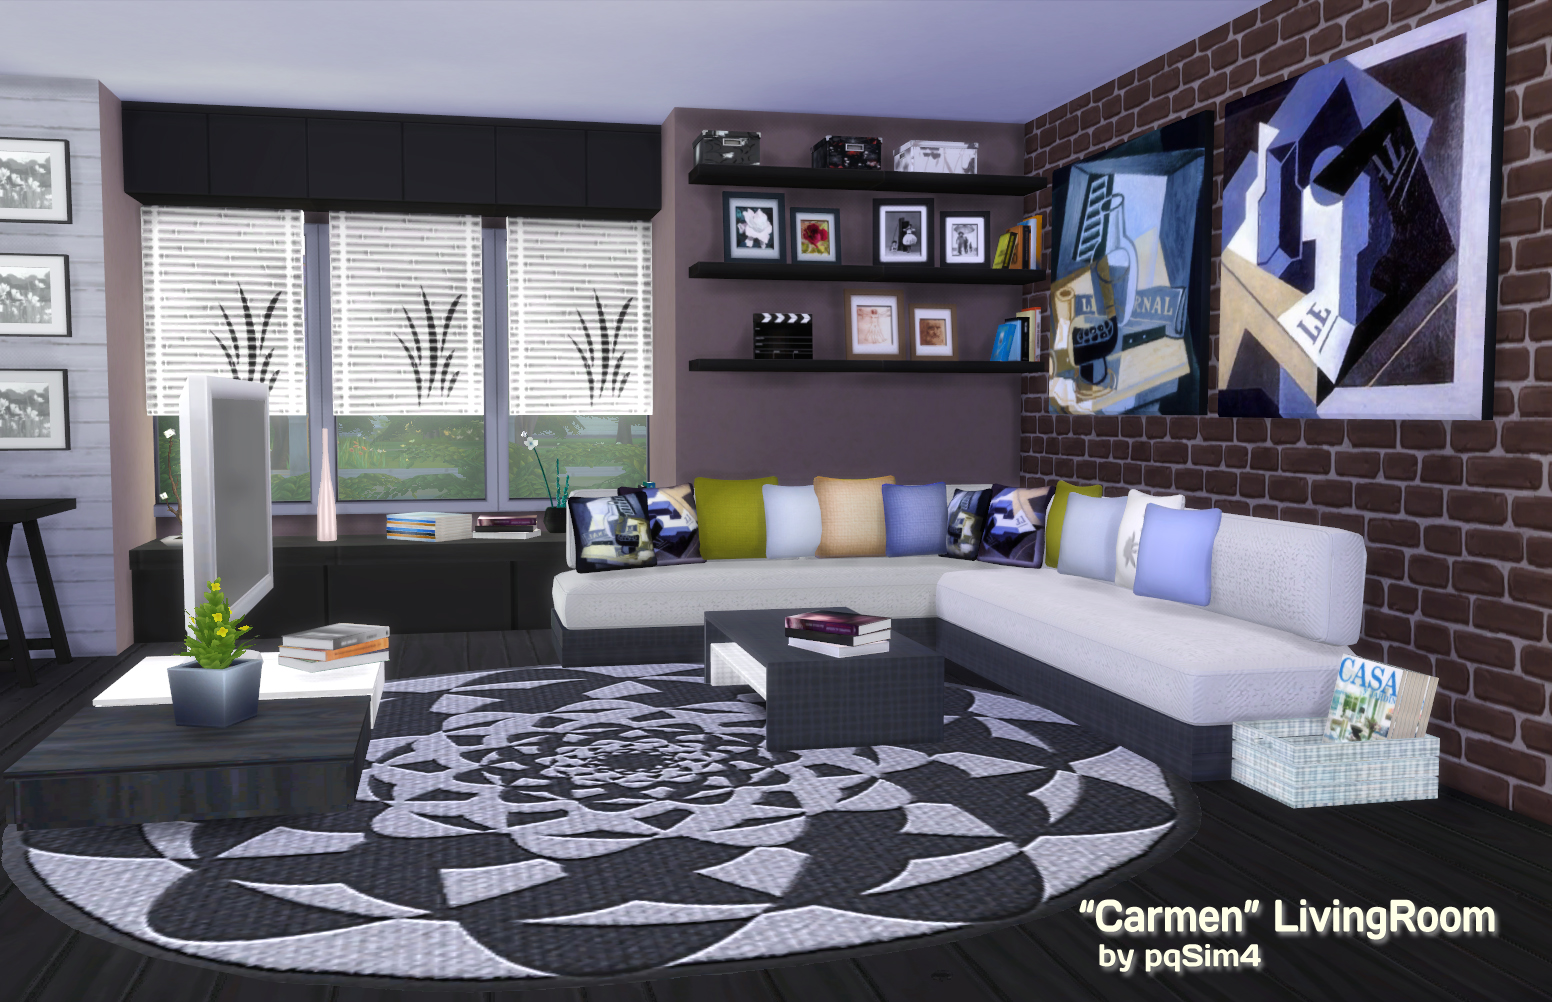 My sims 4 blog carmen living room set by pqsim4 for Sims 4 living room ideas